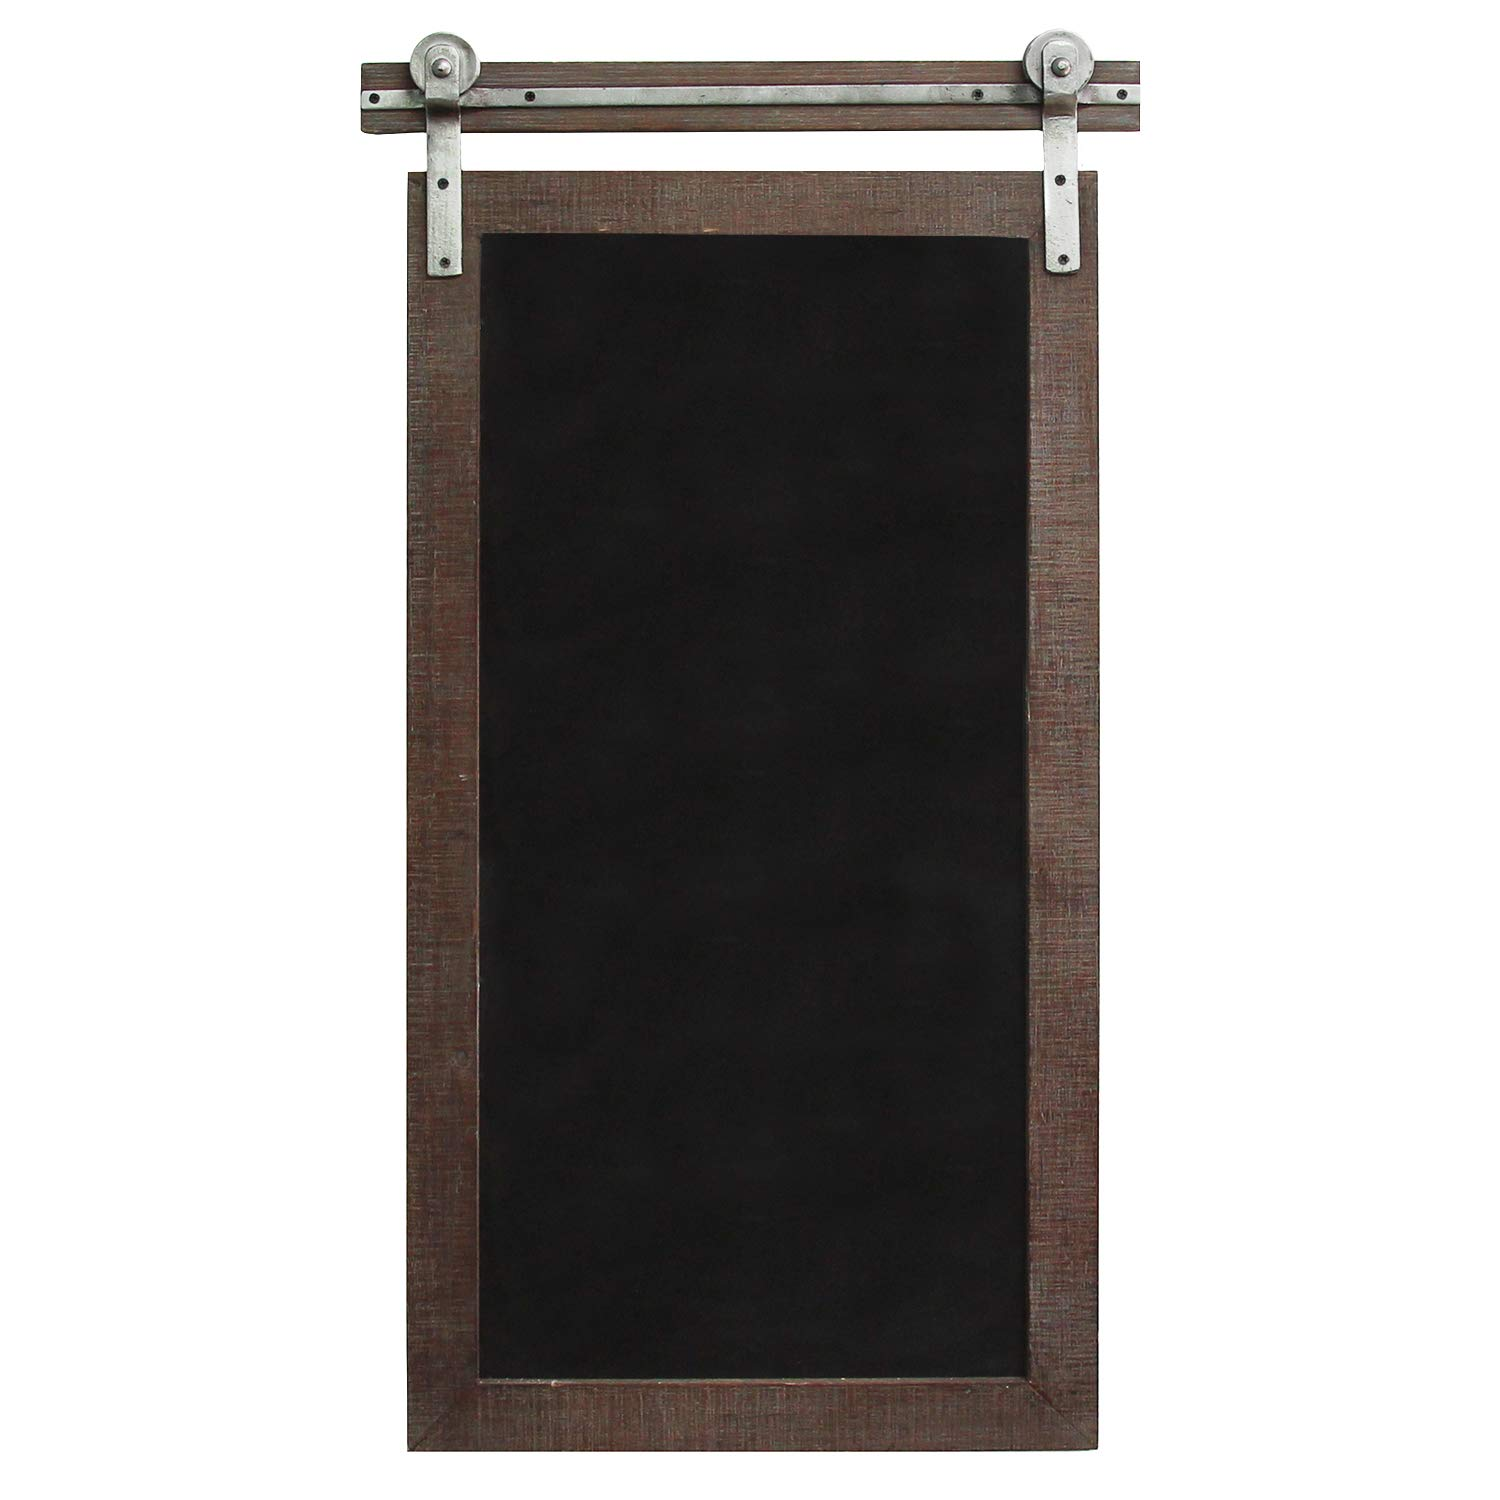 Stratton Home Decor -- Dropship, us home, SUHQX Stratton Home Farmhouse Chalkboard Wall Decor Utility, Dark Natural Wood by Stratton Home Decor -- Dropship, us home, SUHQX